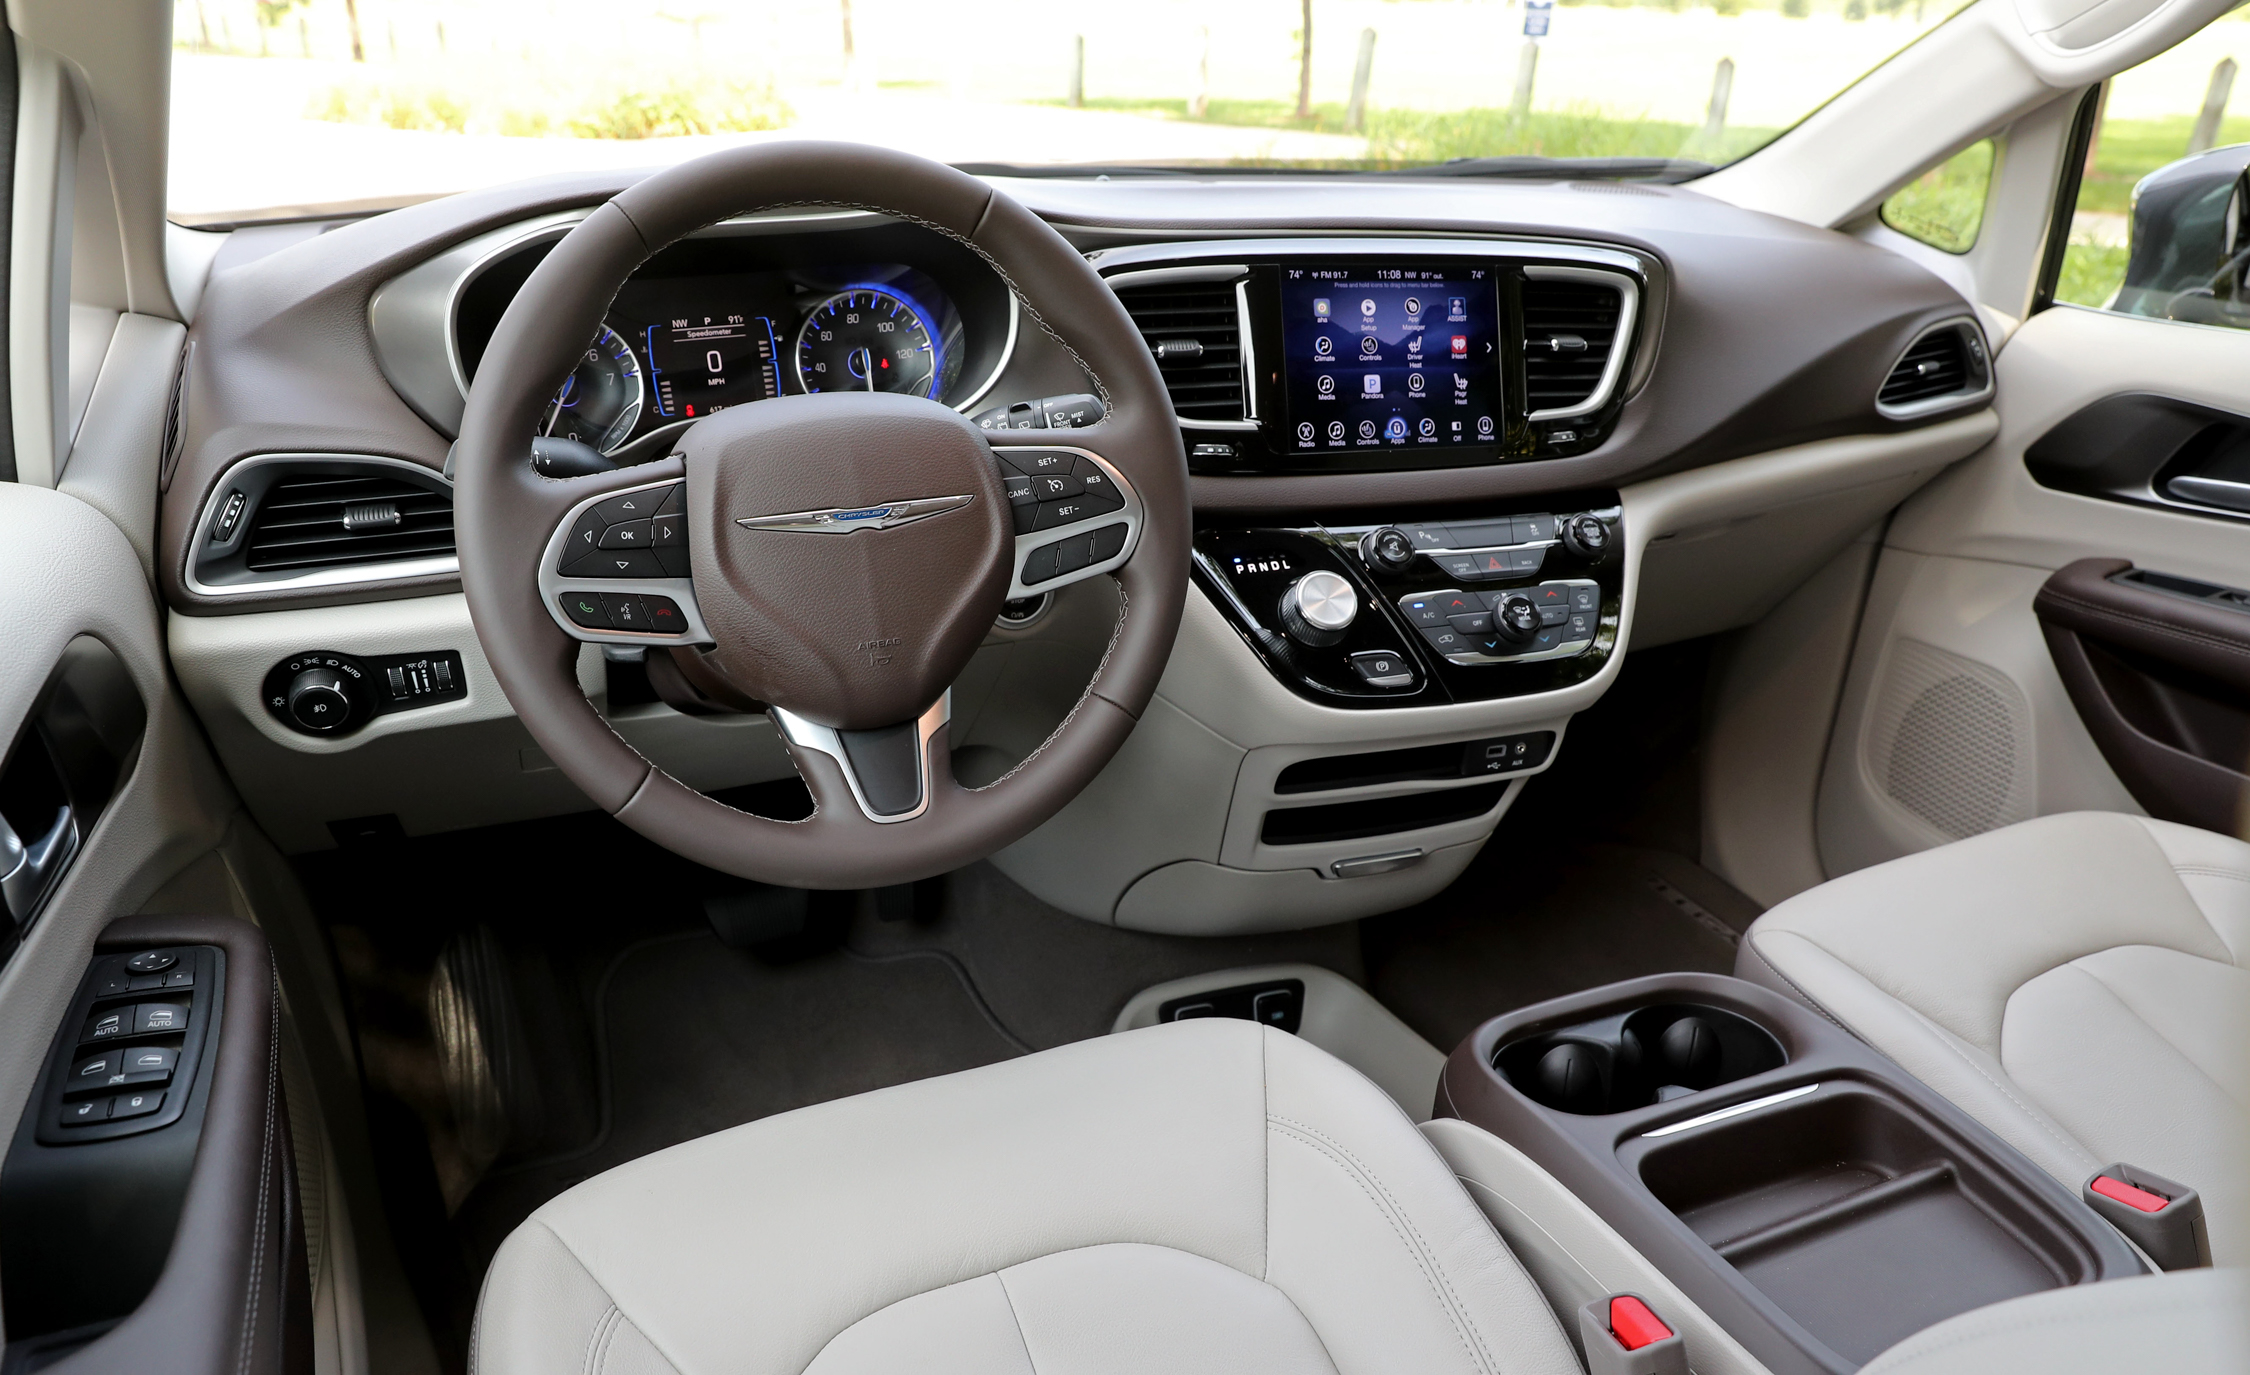 2017 Chrysler Pacifica Touring L Interior Dashboard (View 11 of 25)